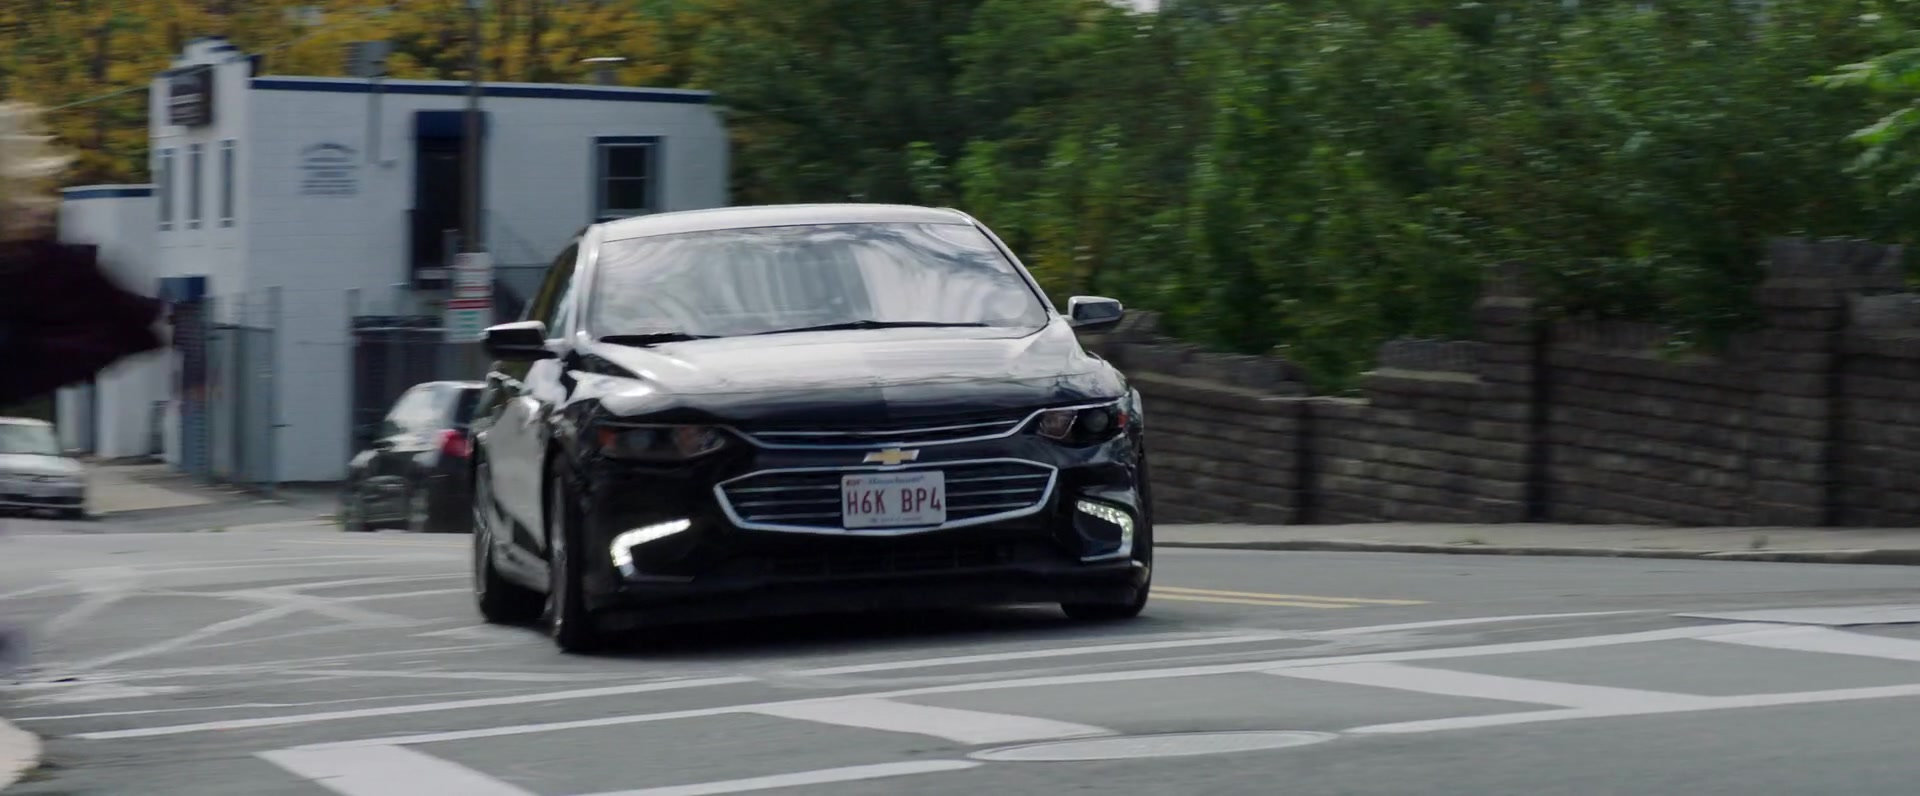 Chevrolet Malibu Car Driven by Denzel Washington in The ...